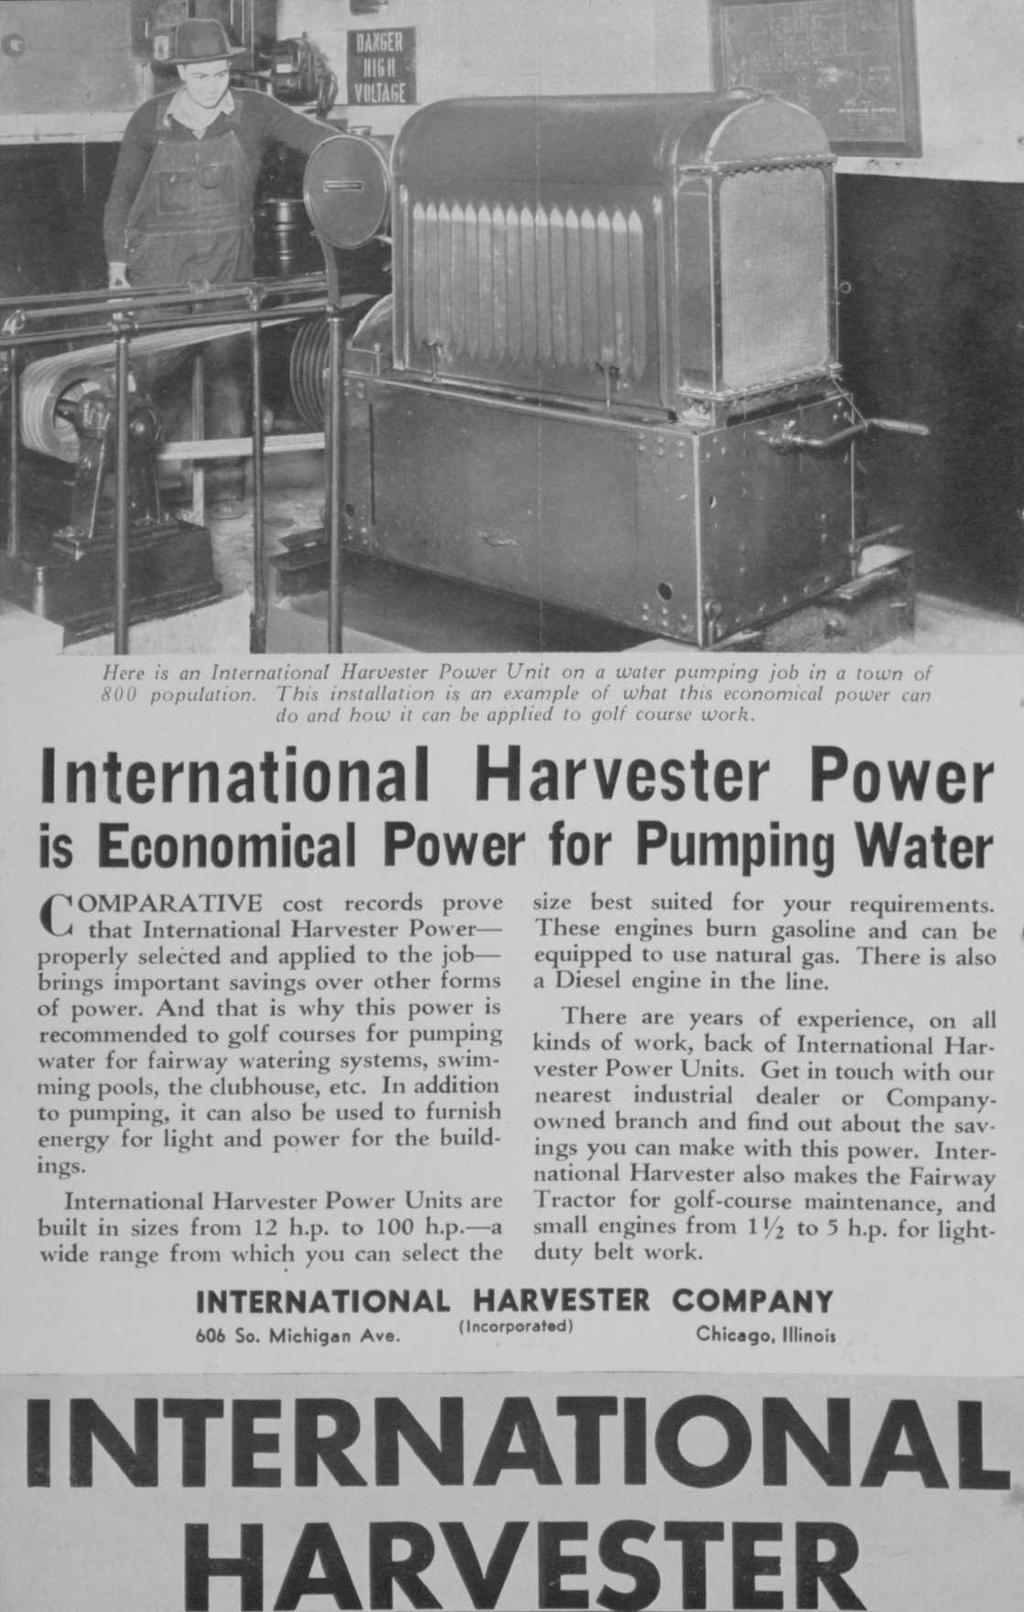 Here is an InternationaI Harvester Power Unit on a water pumping job in a town of 800 population.